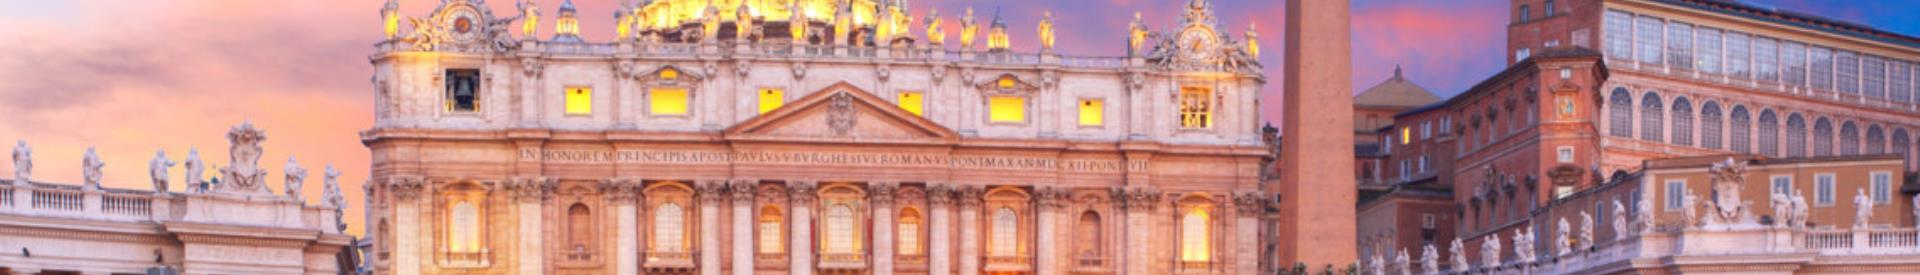 Basilica of Saint Peter-Vatican City-Hotel Piccadilly Rome